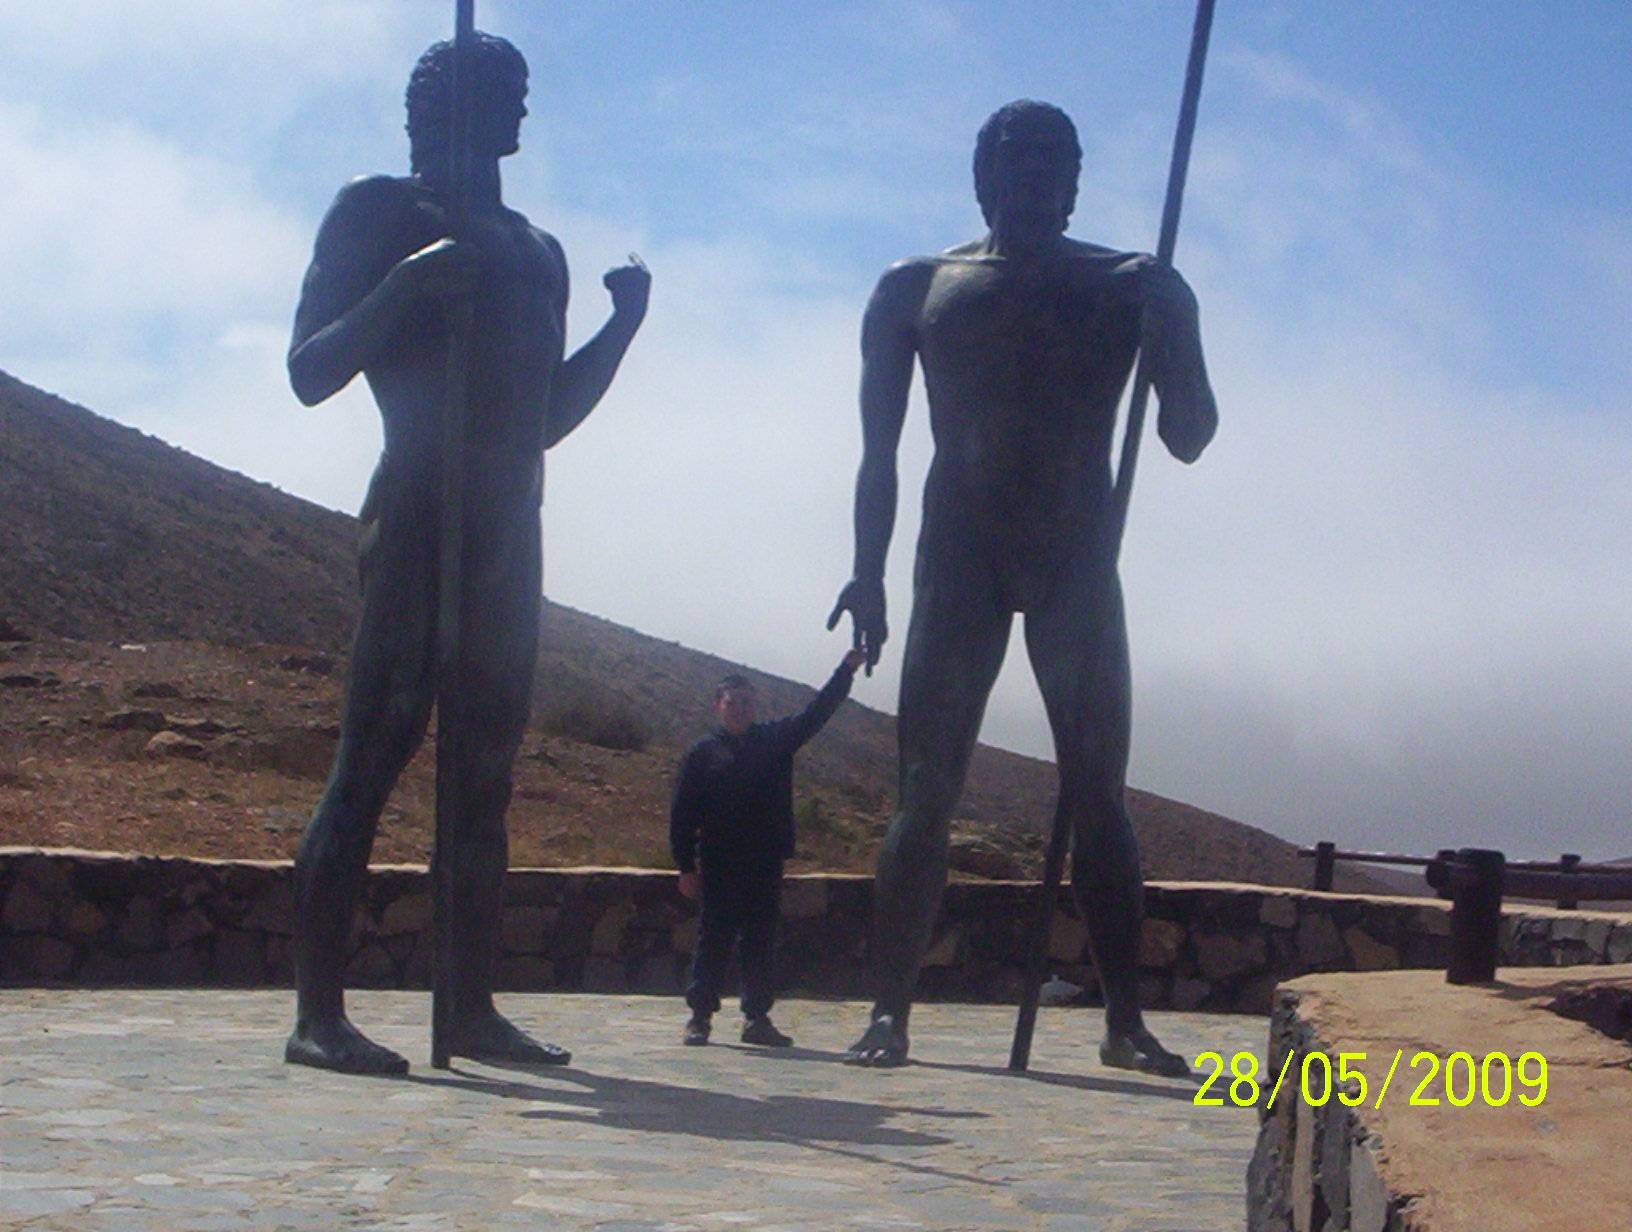 Statues in the Mountains